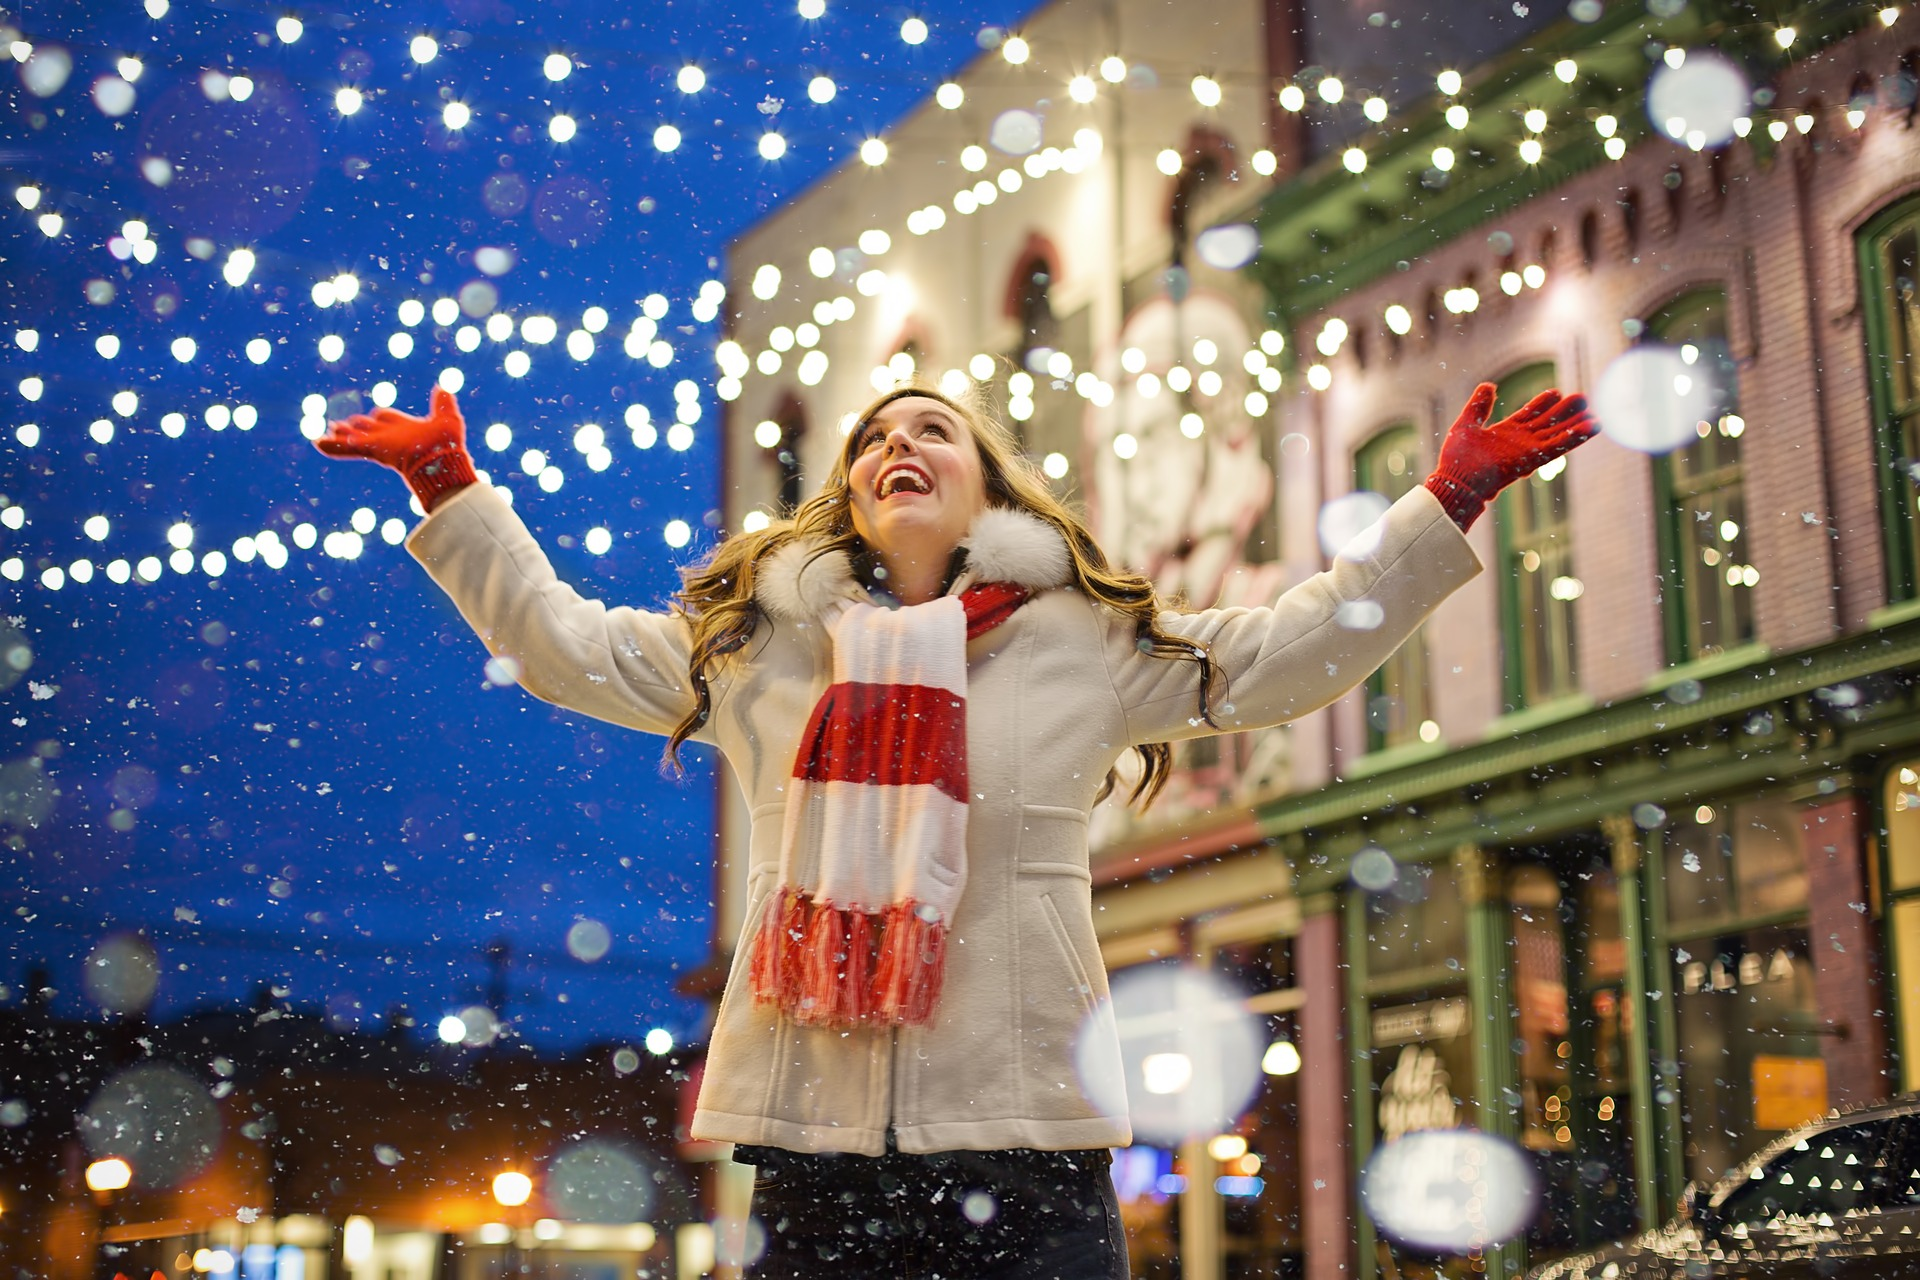 How Business Owners Can Let Go and Relax During The Holidays